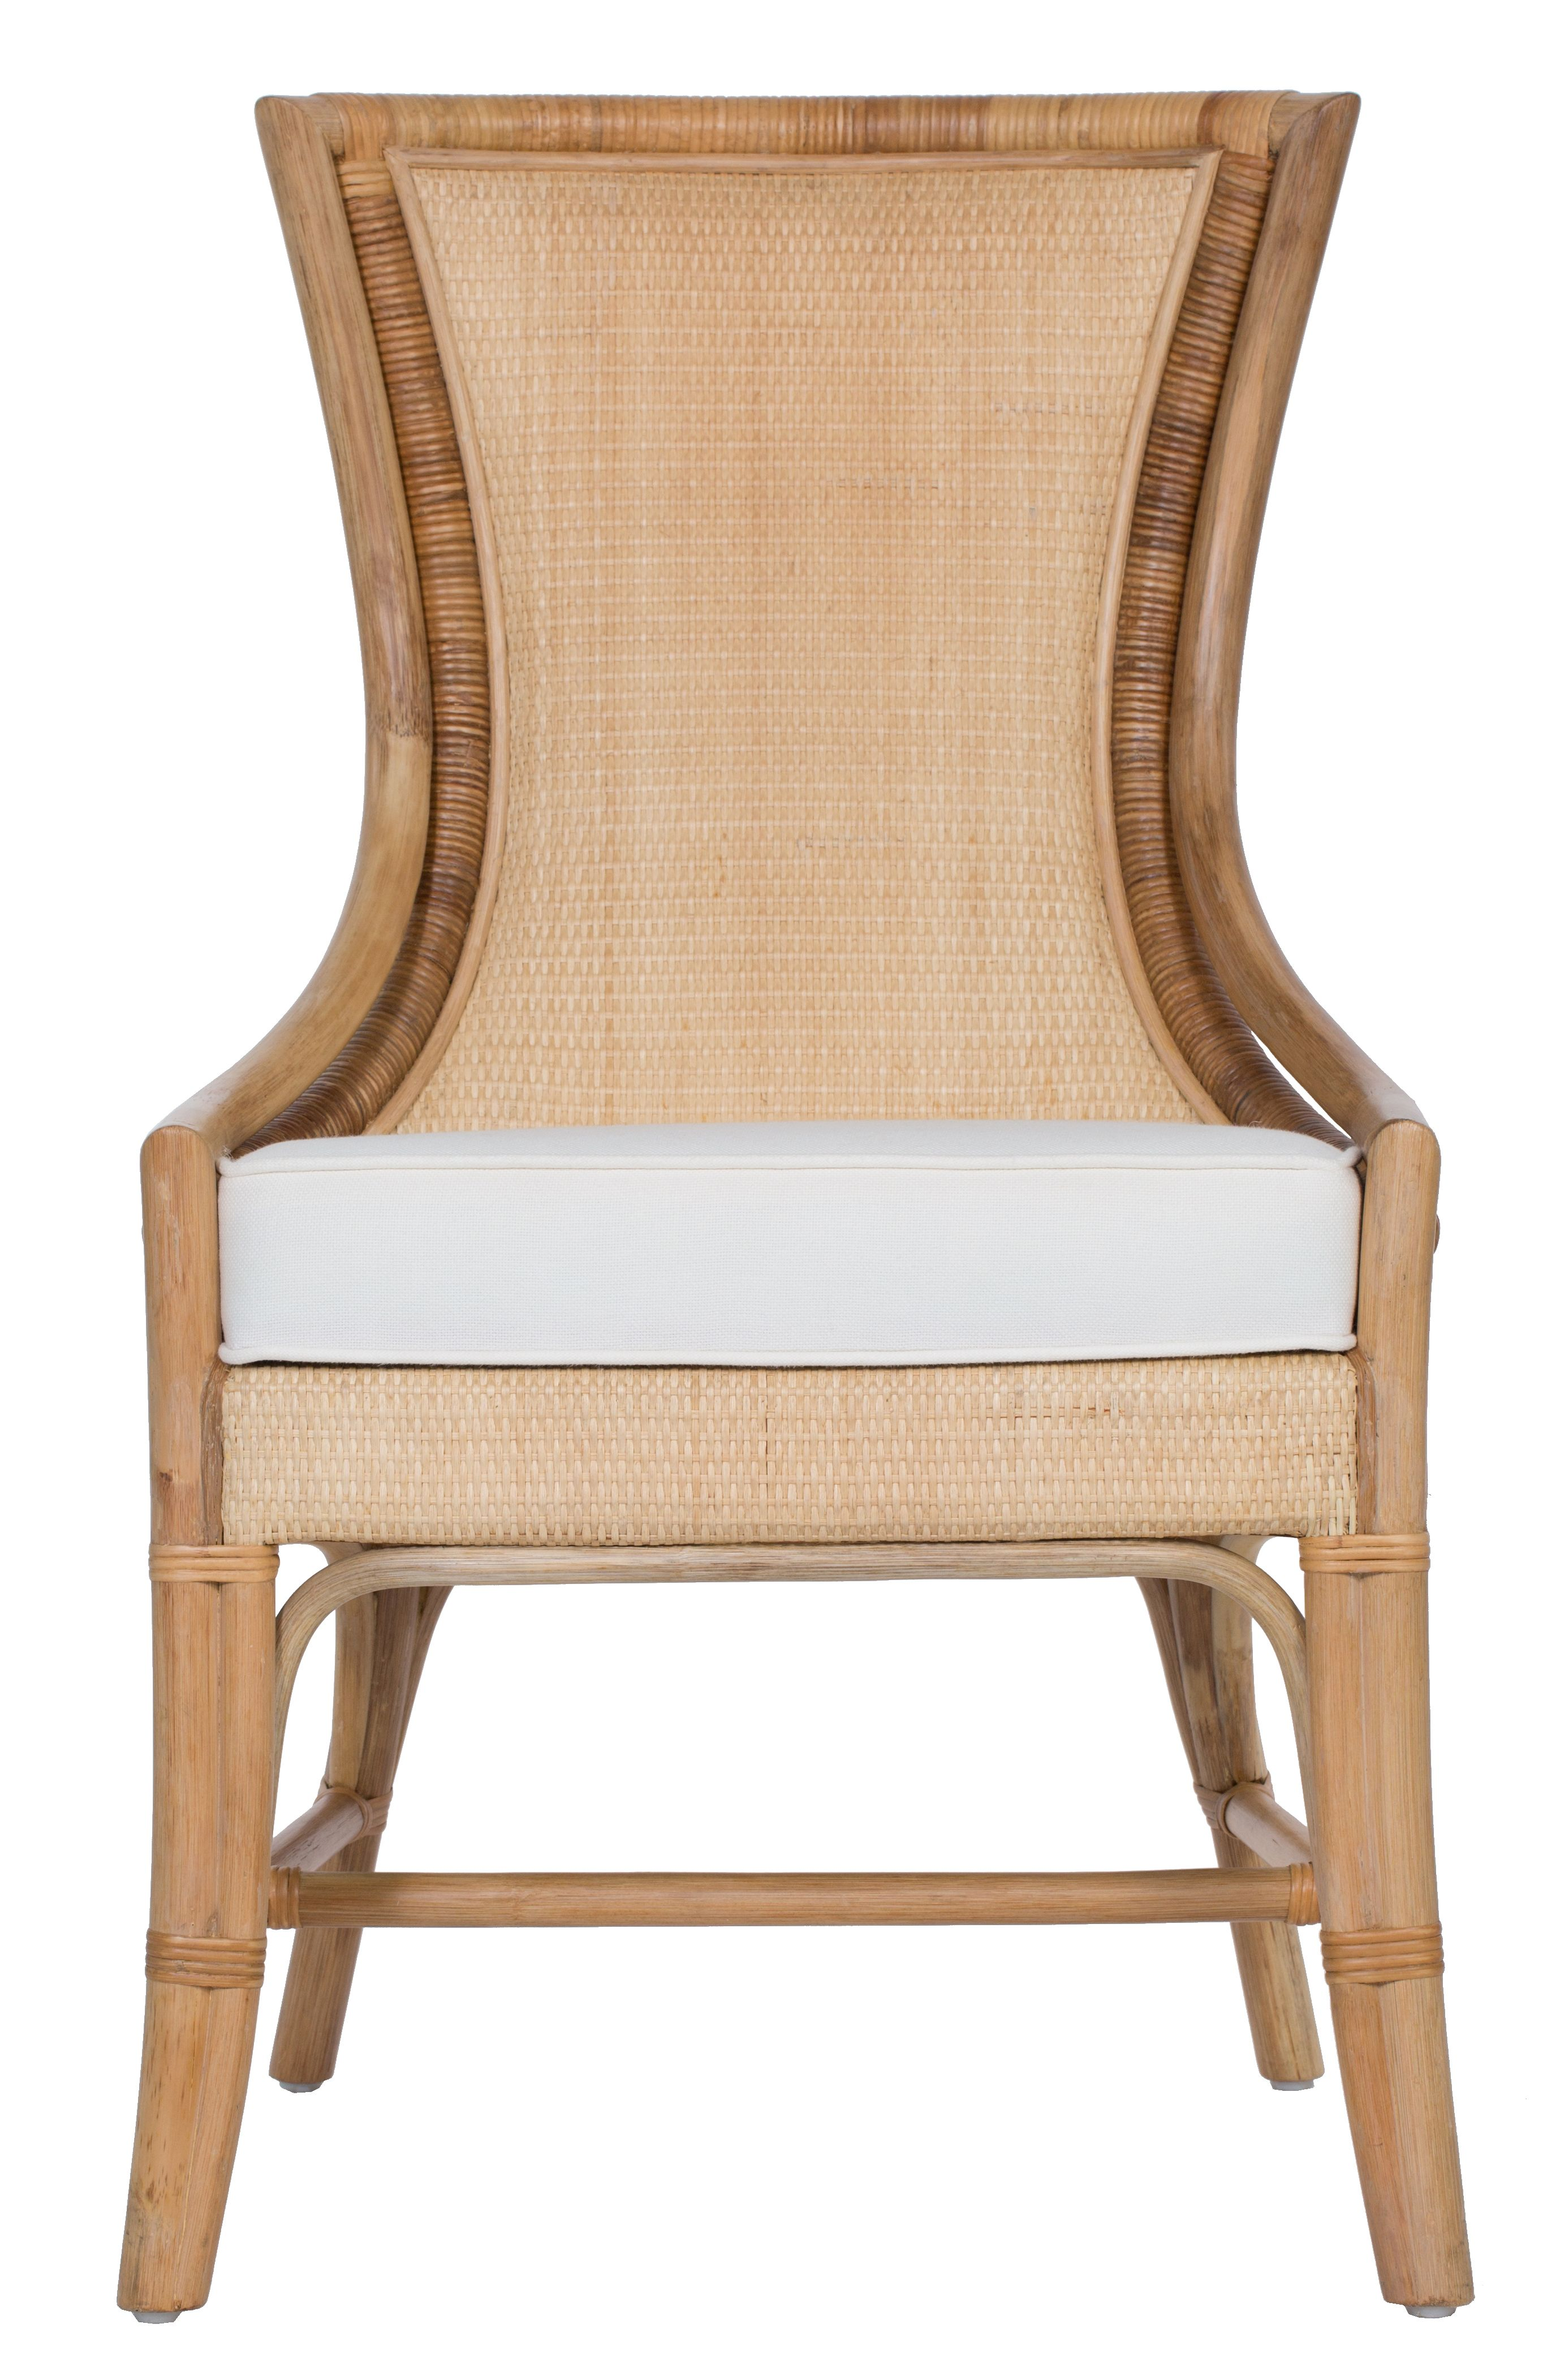 D4900 Barbados Side Chair Shown In Natural #Davidfrancisfurniture #Customfurniture #Weatheredcollection